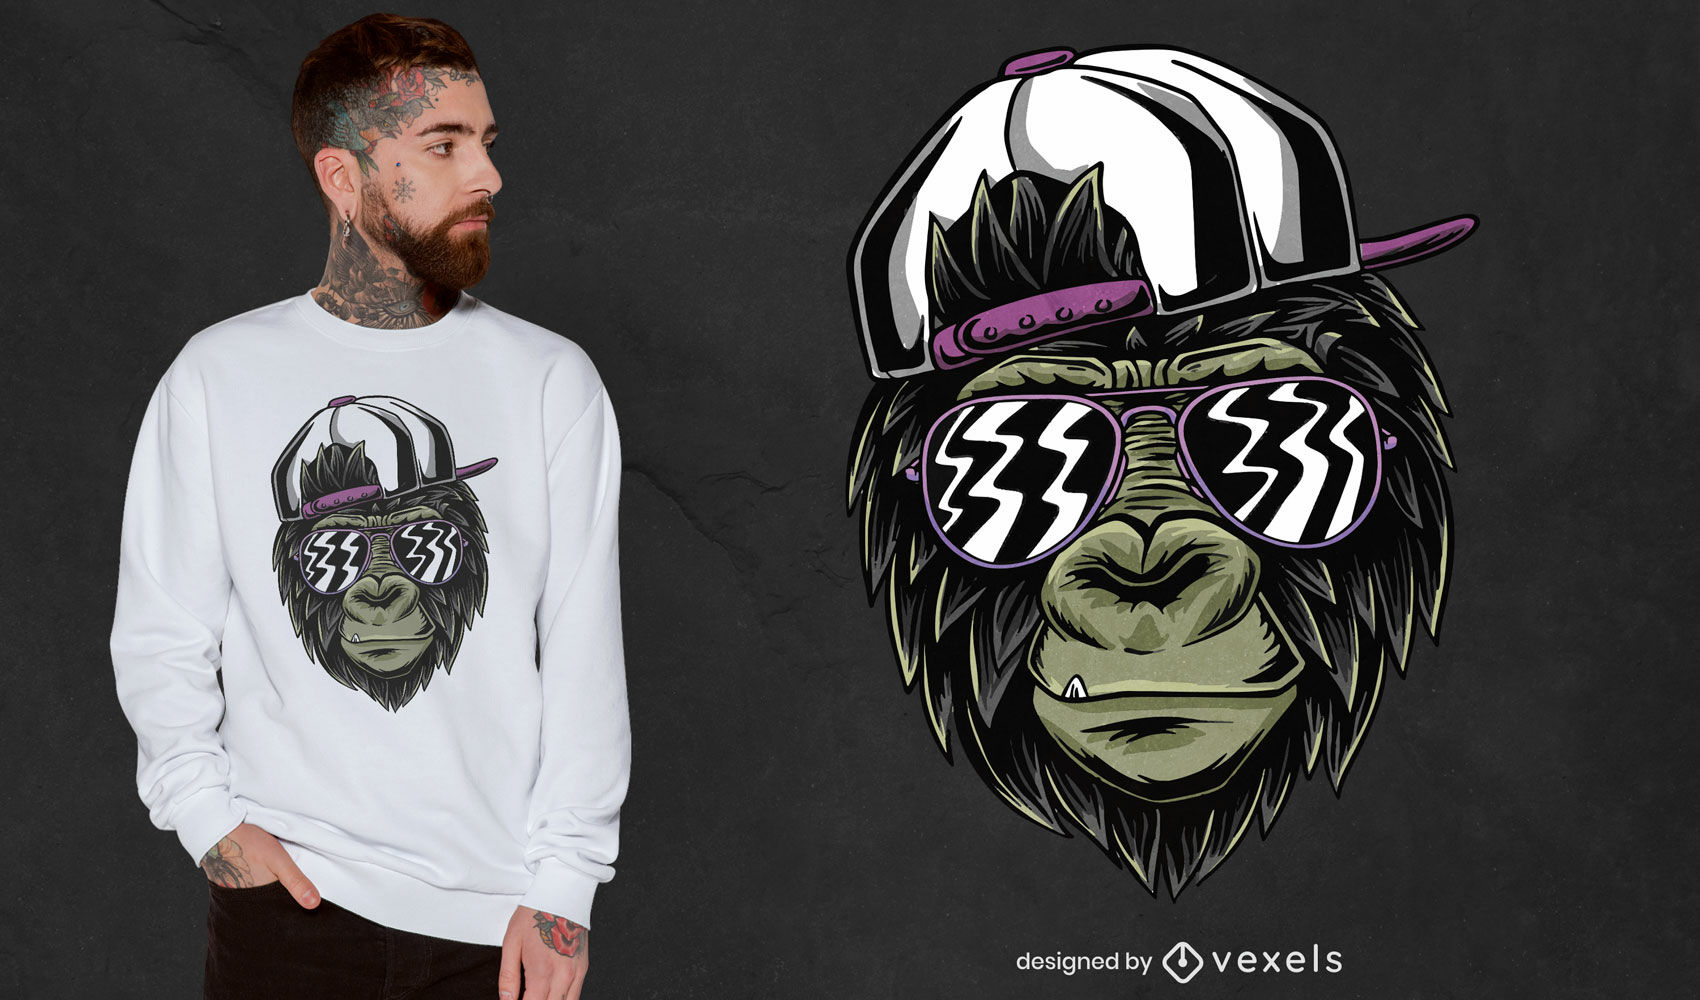 Cool monkey with glasses t-shirt design